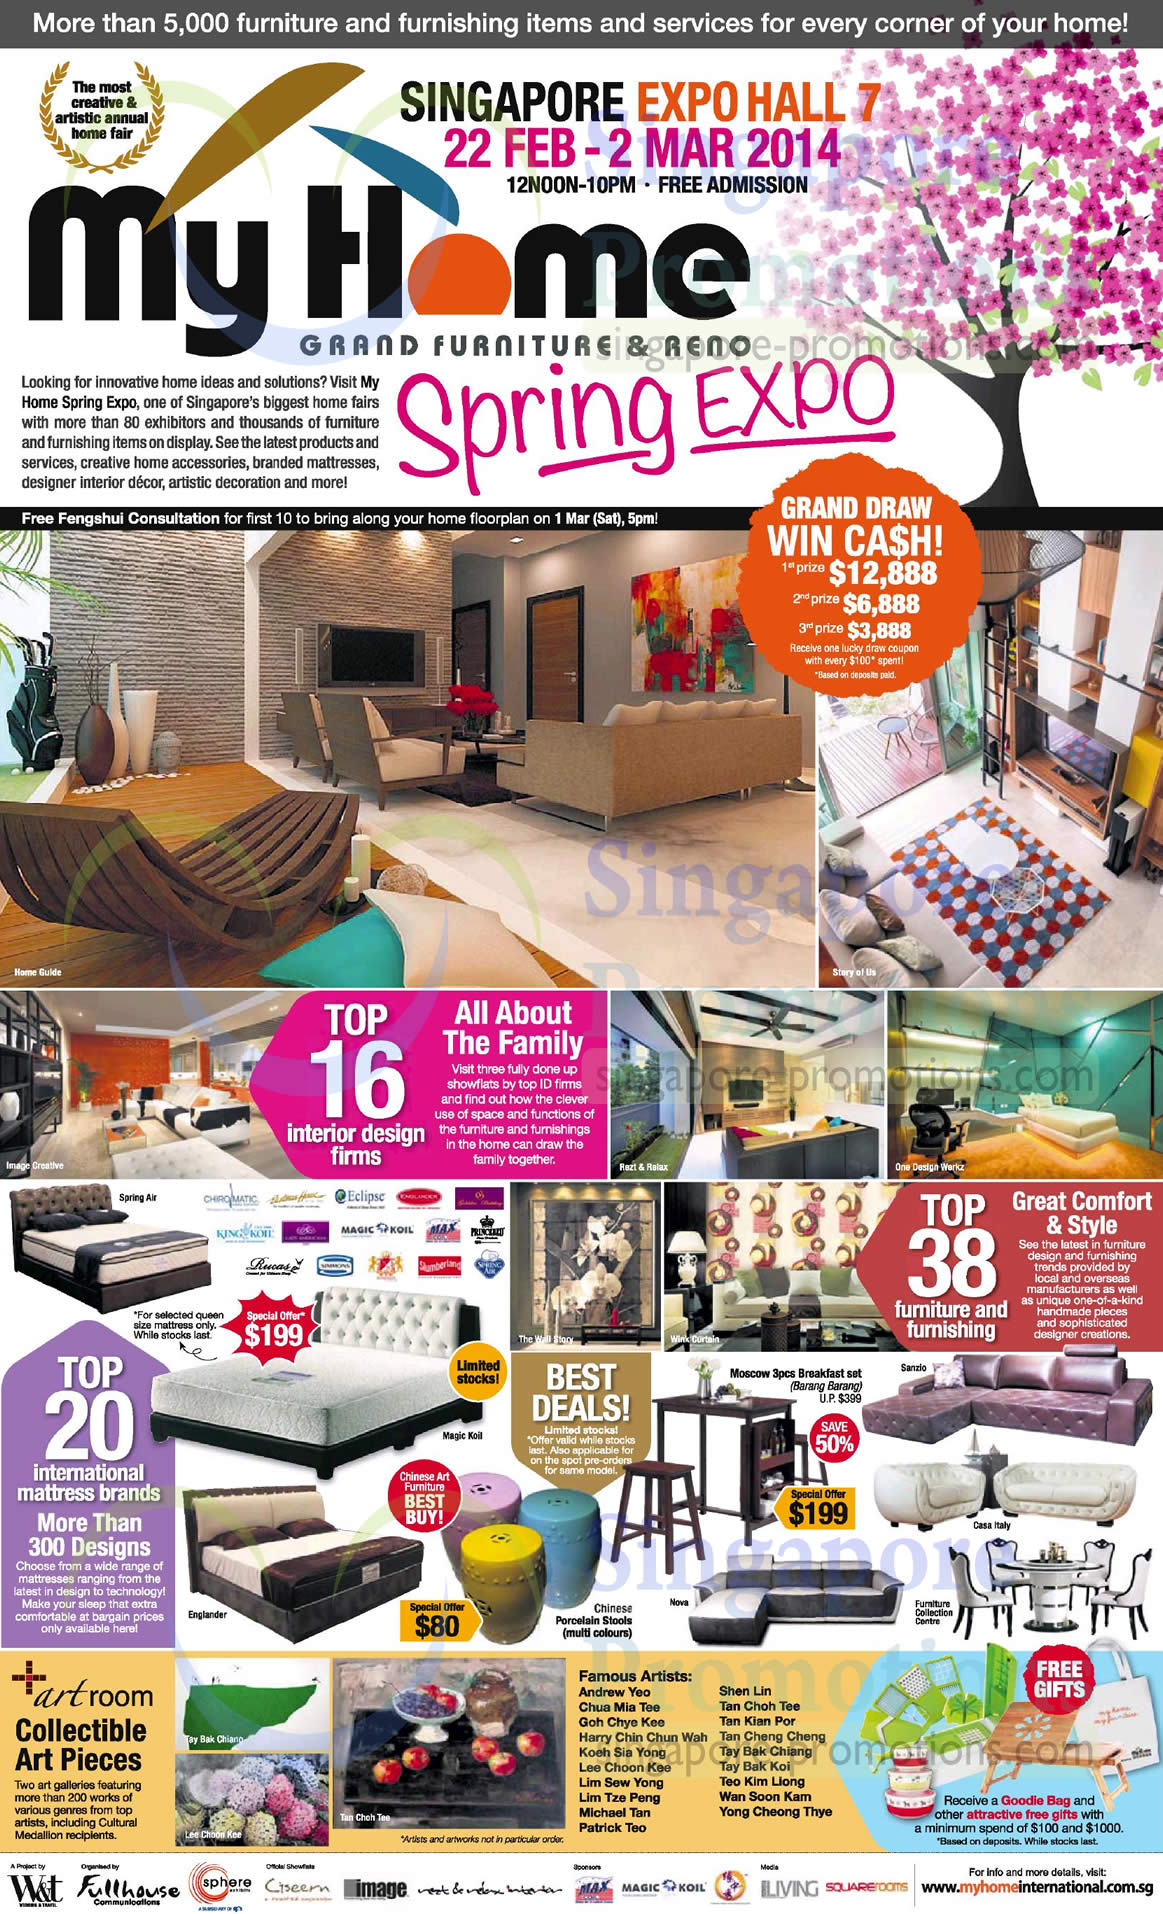 23 Feb Lucky Draw, Interior Design, Mattress Brands, Furniture, Best Deals, Art Pieces